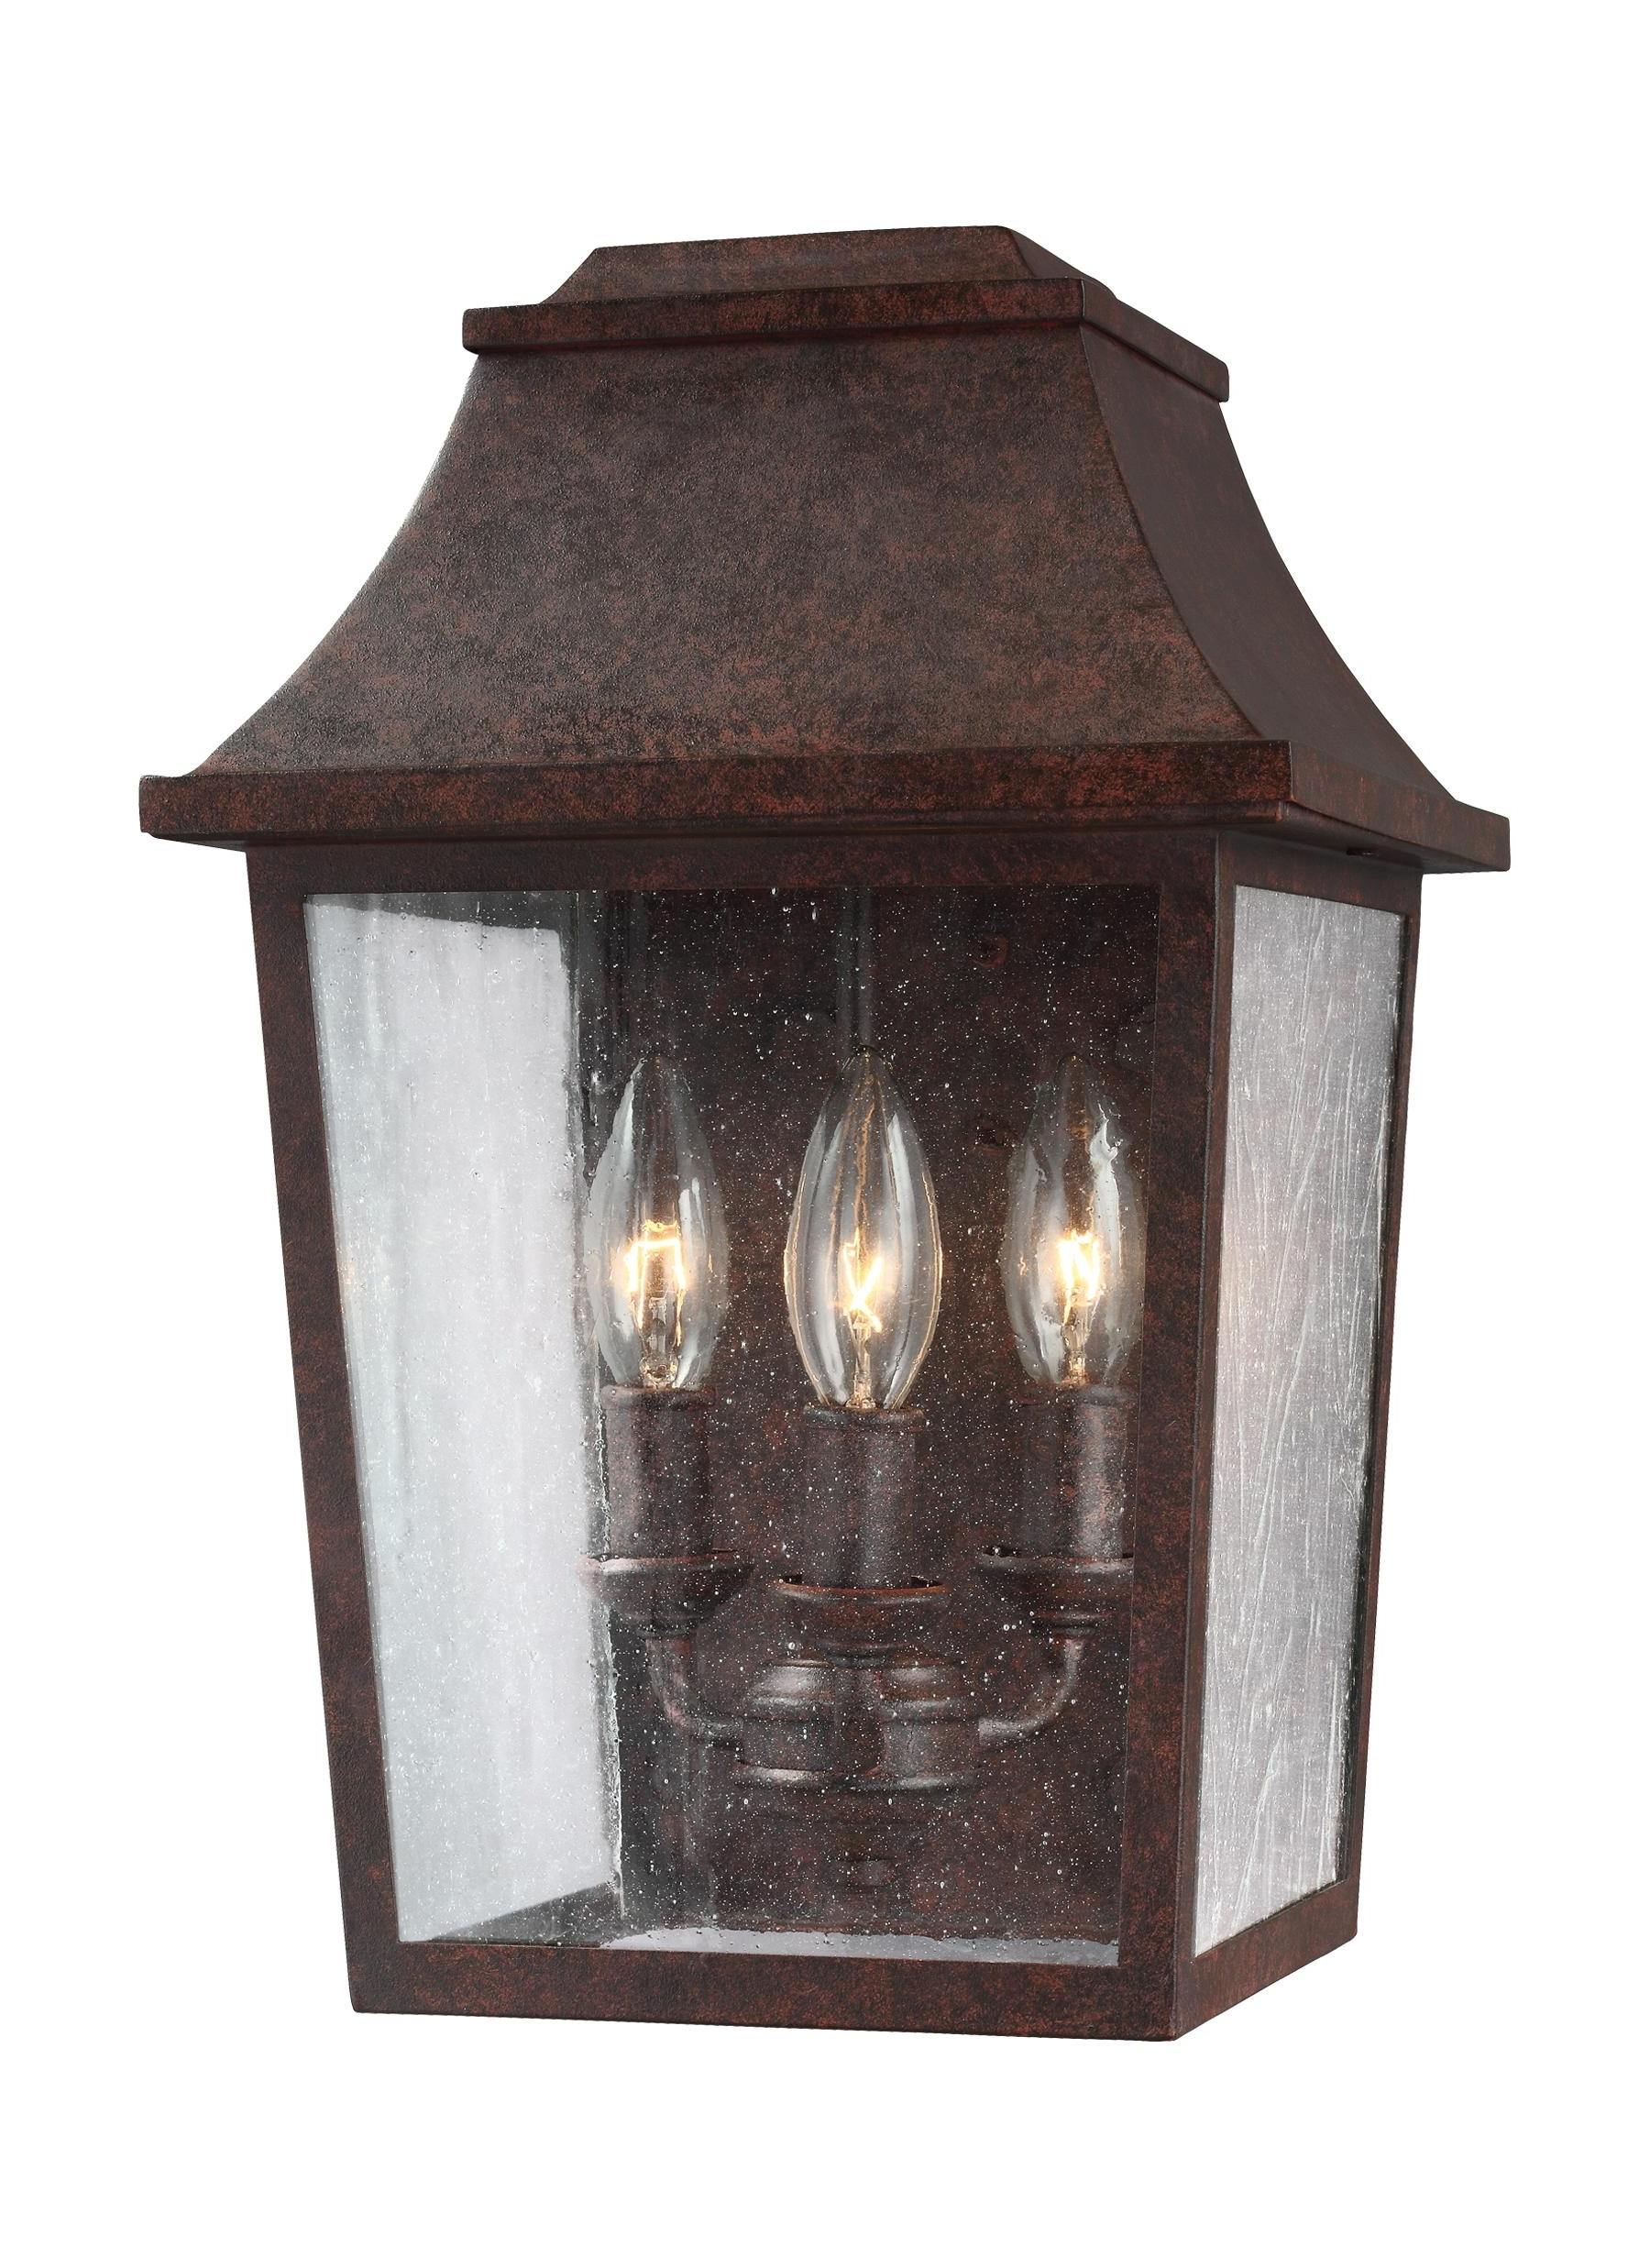 Copper Outdoor Ceiling Lights Throughout Current Ol11901pcr,3 – Light Outdoor Wall Lantern,patina Copper (View 9 of 20)